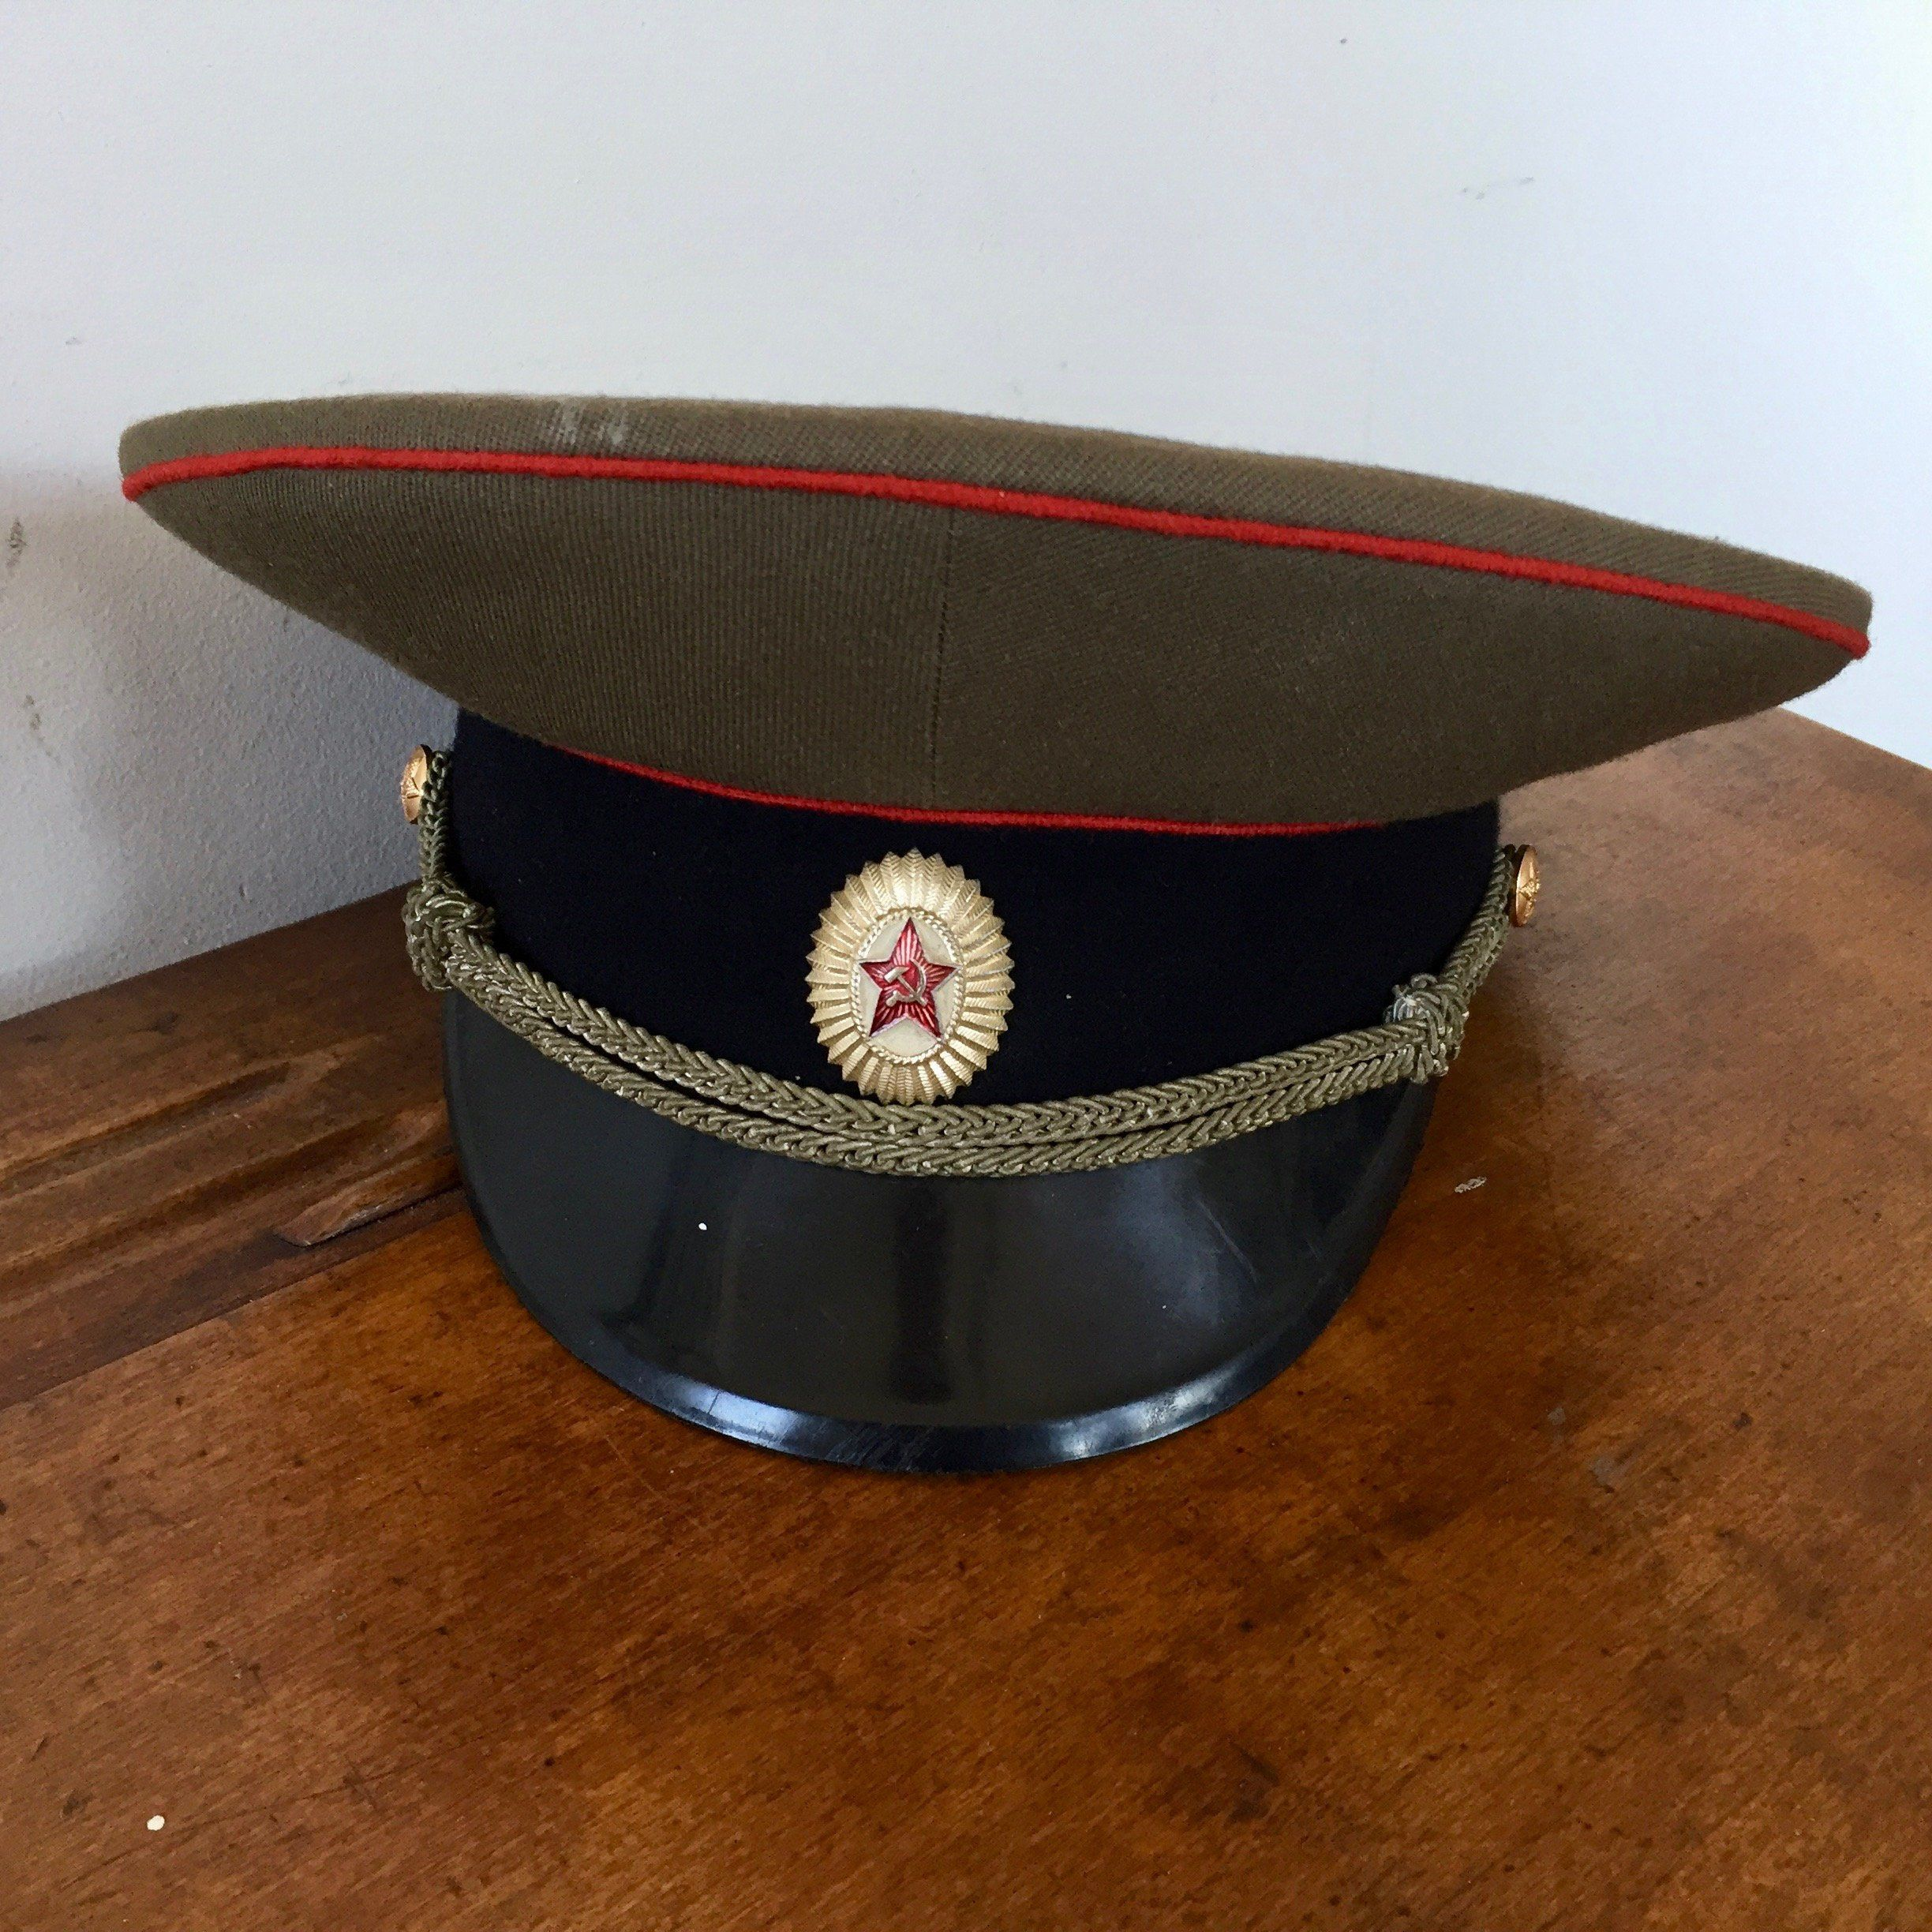 Vintage Russian Military Hat W Hammer And Sickle Hat Badge Ussr Visor Hat Russian Army Officer Cap Red Army Hat Field Visor M69 Army Hat Visor Hats Military Hat